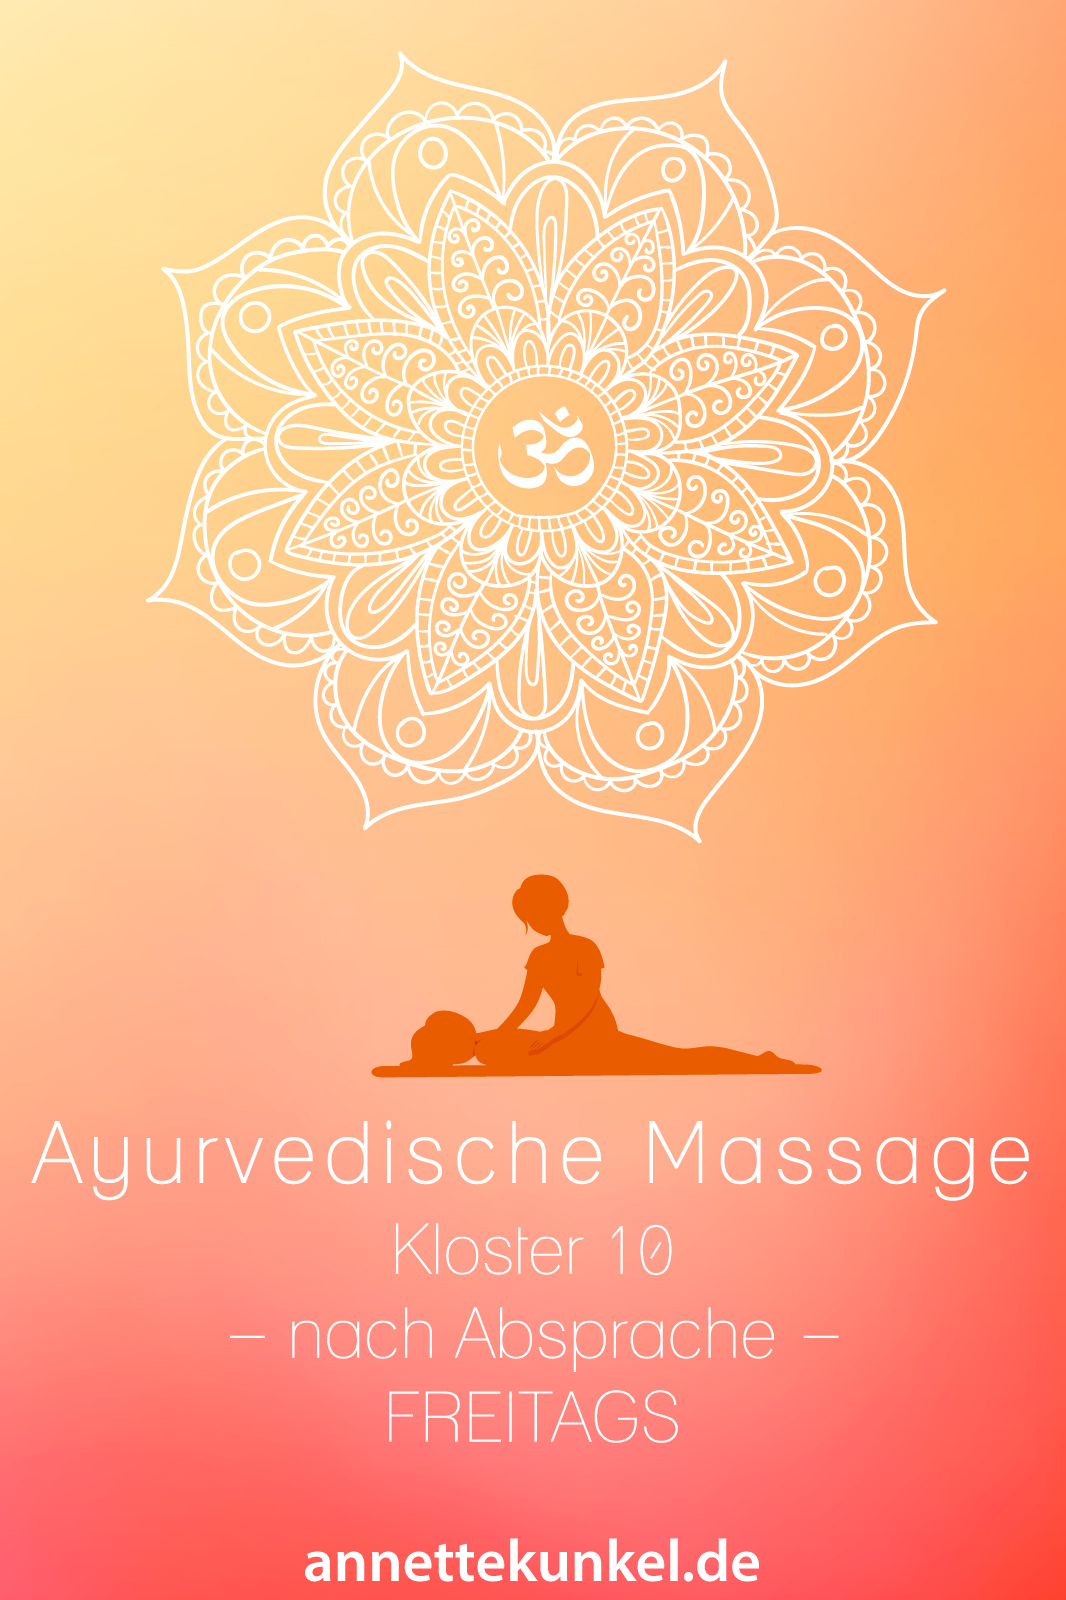 Ayurvedische Massage in Bad Säckingen ab 55 Euro - erholsame Einzelsession.